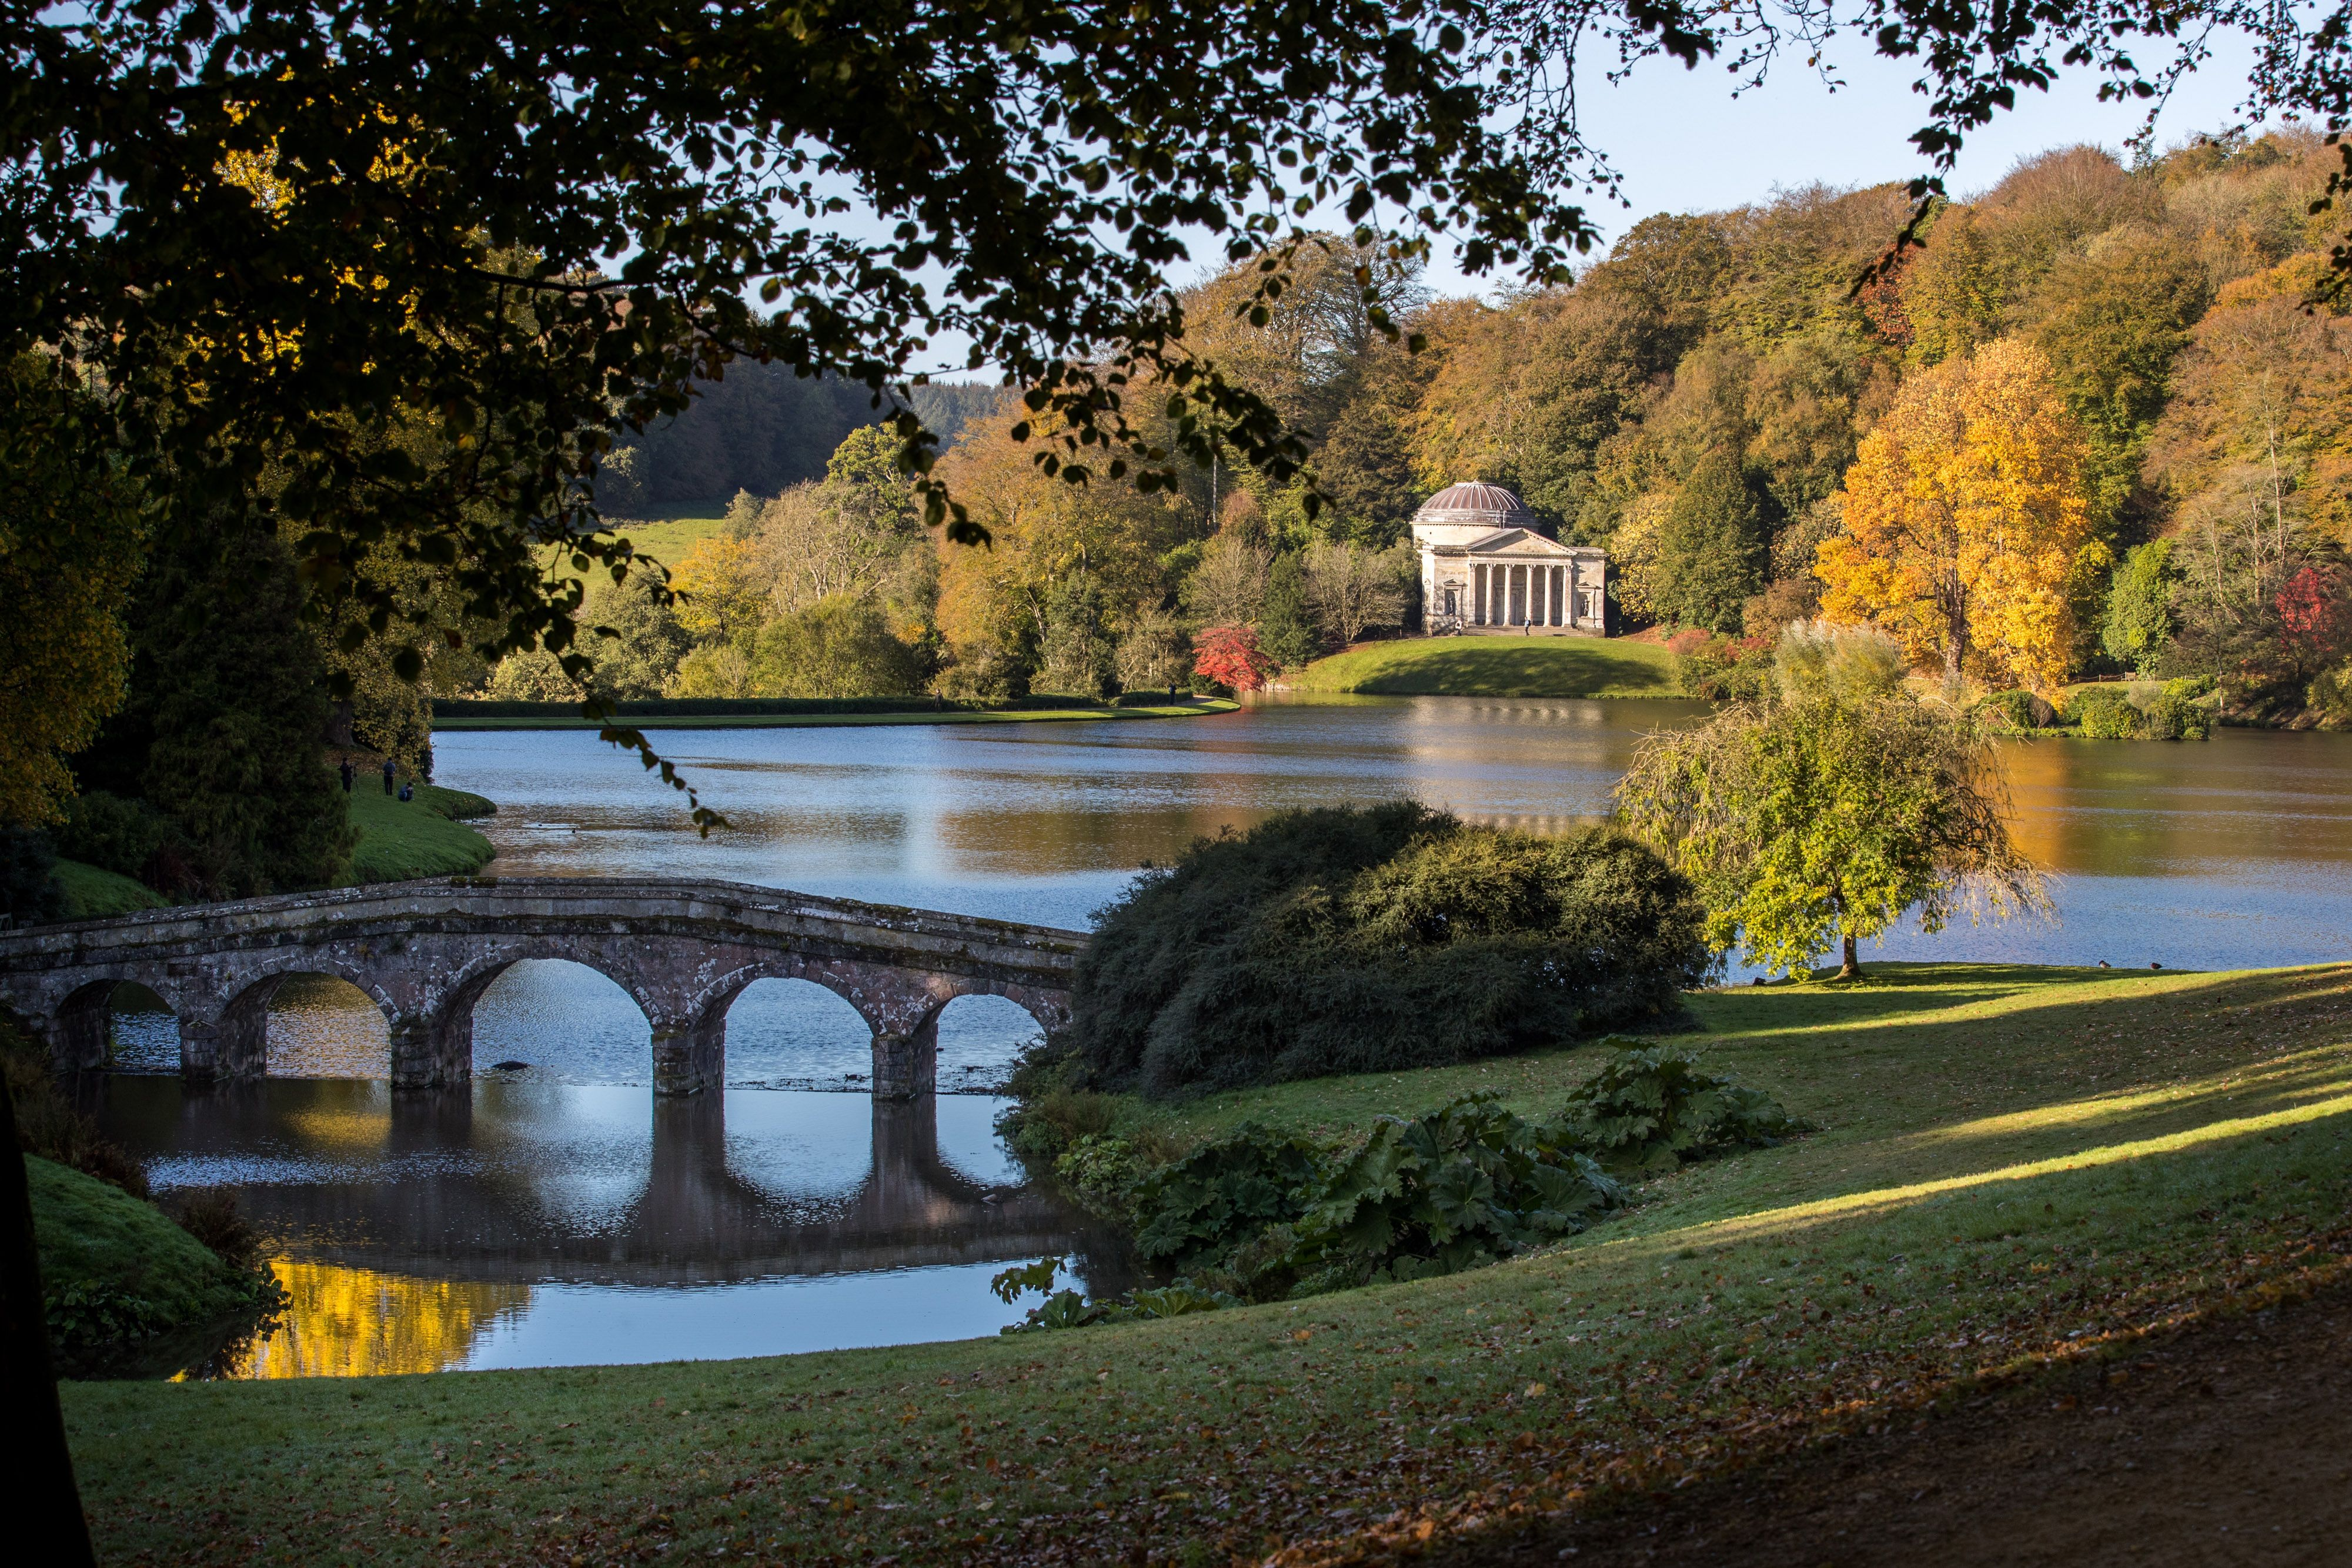 Celebrate the National Trust's 125th birthday this Sunday